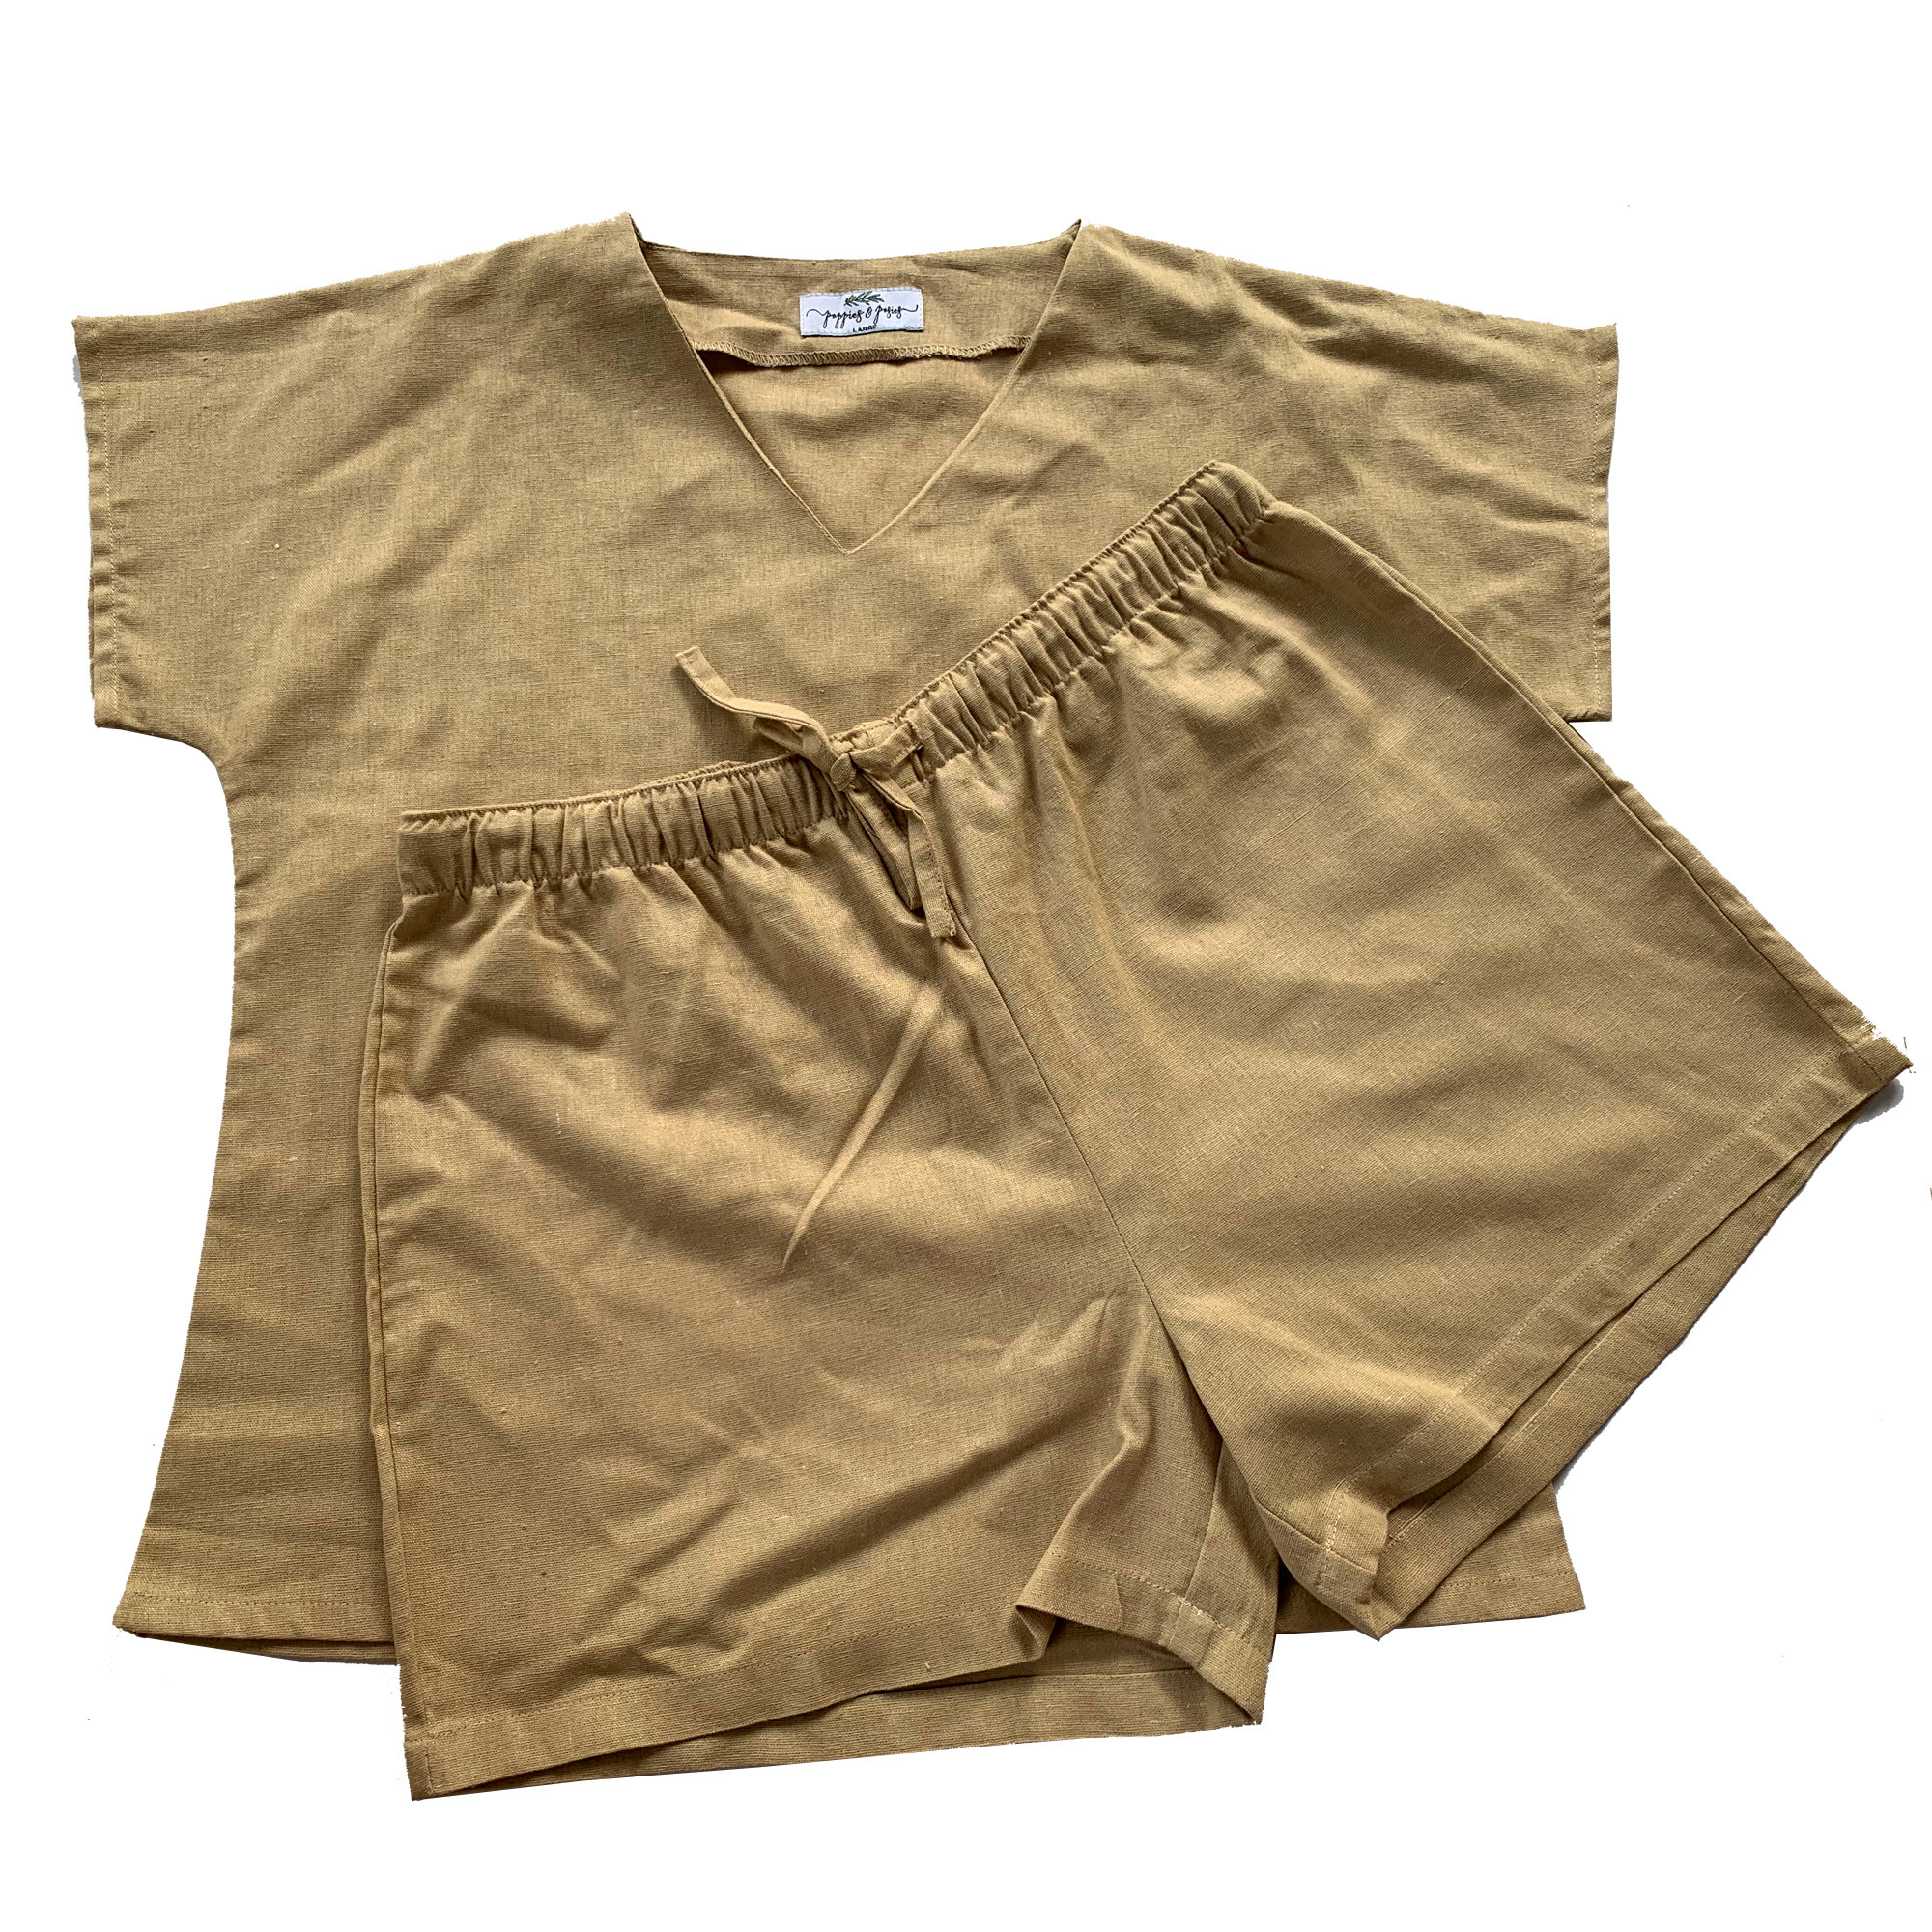 Linen PJ Set - V-Neck Tee and Shorts with elastic waistband and drawstring